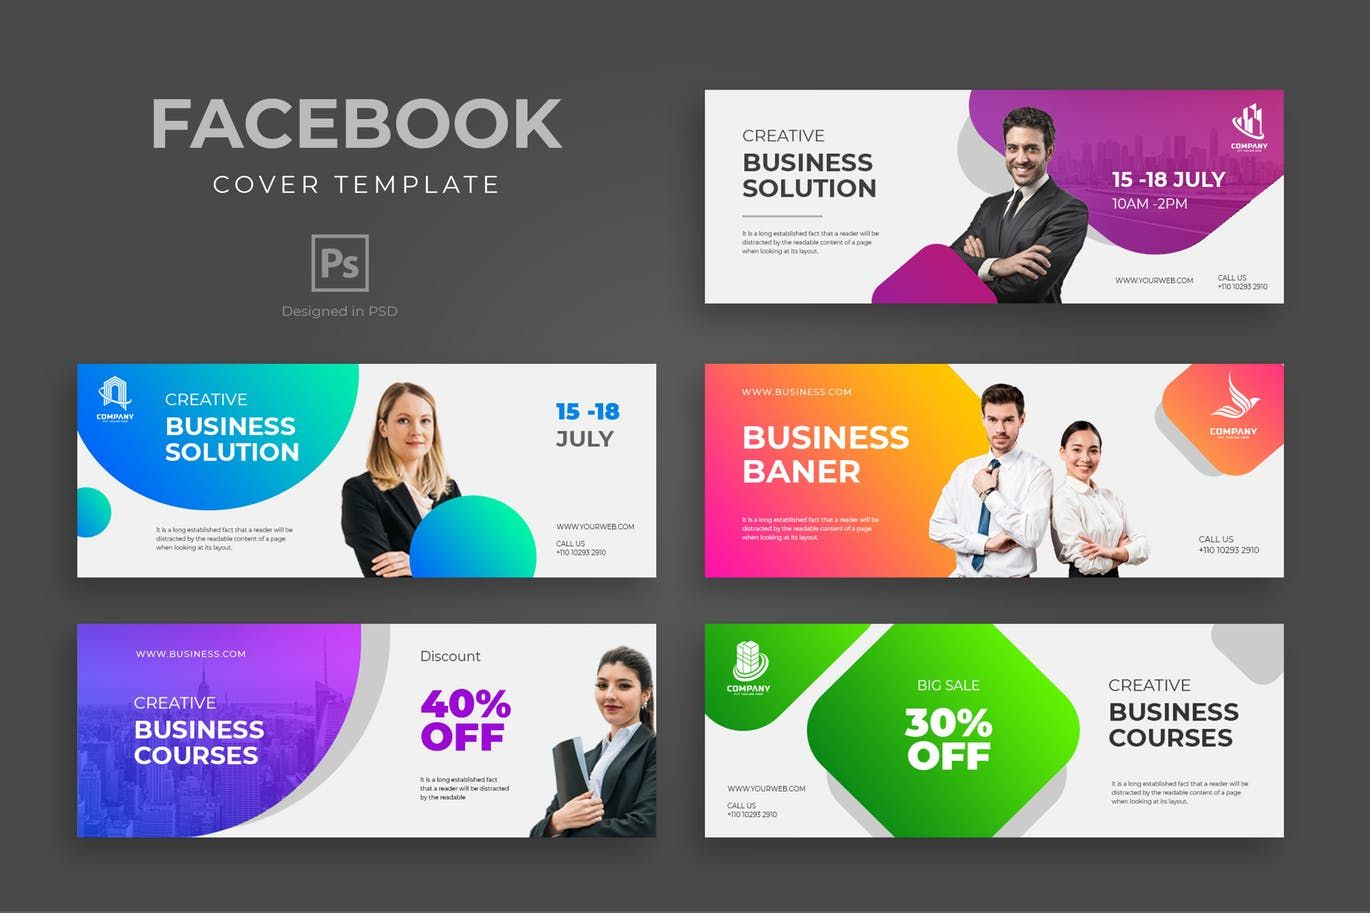 Business Facebook Cover Template By Uicreativenet On Facebook Cover Template Cover Template Facebook Cover Design